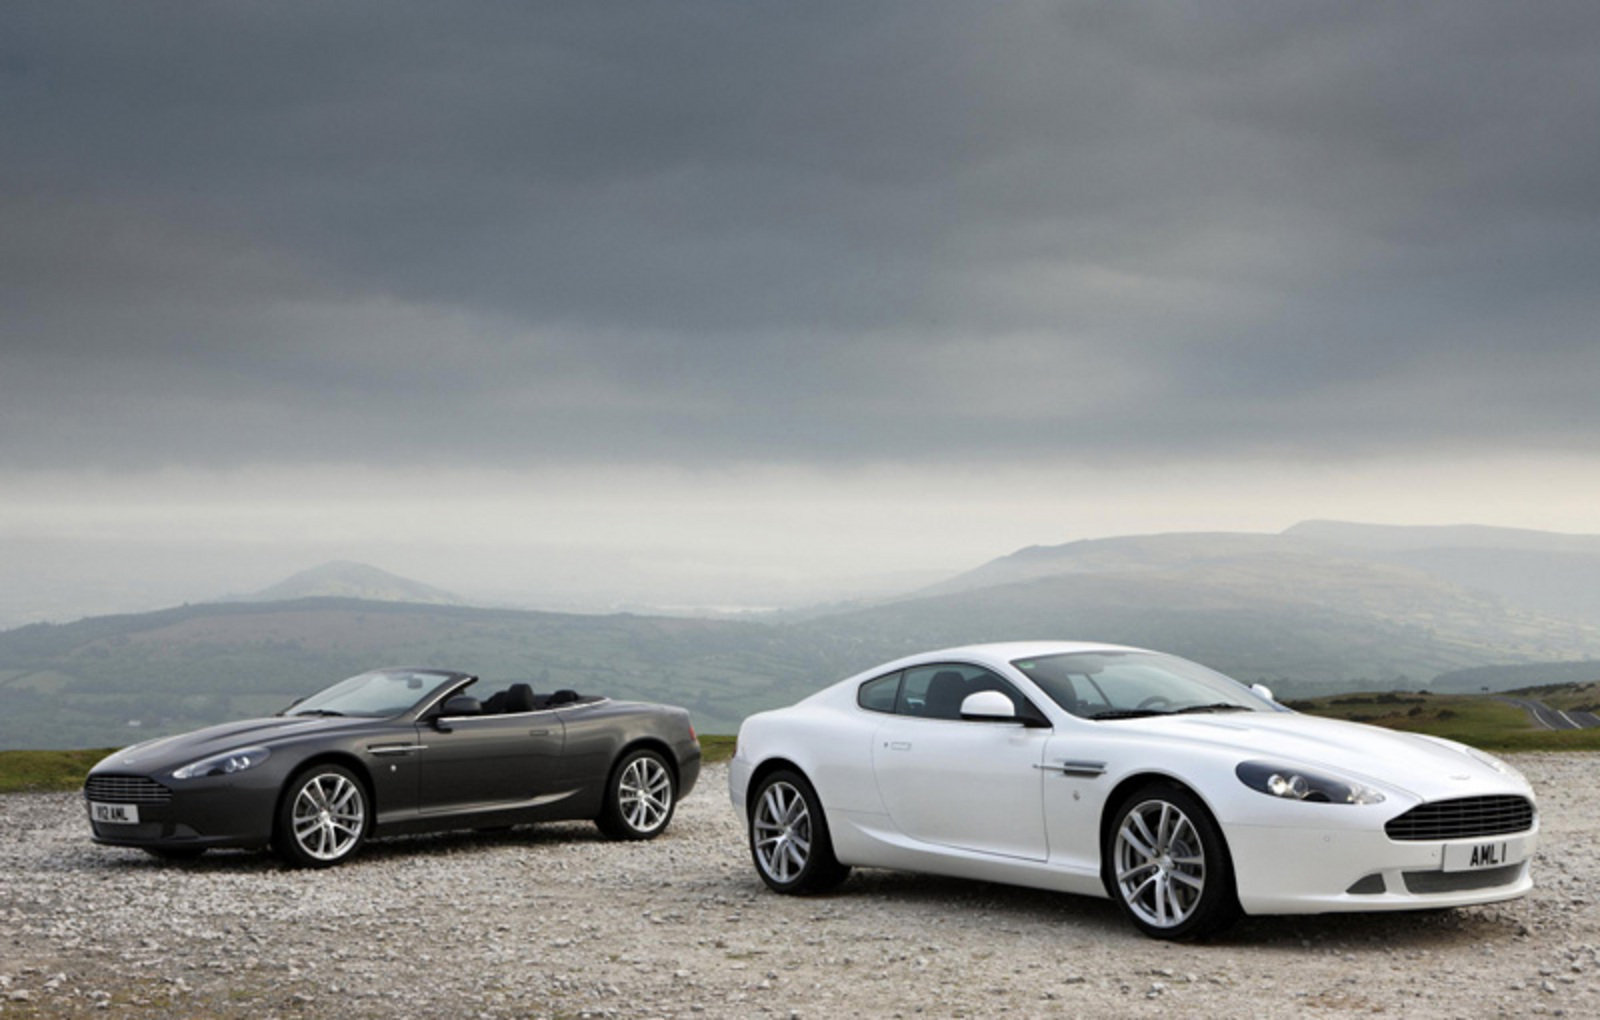 Aston Martin DB9 I Restyling 2 2012 - now Coupe #2